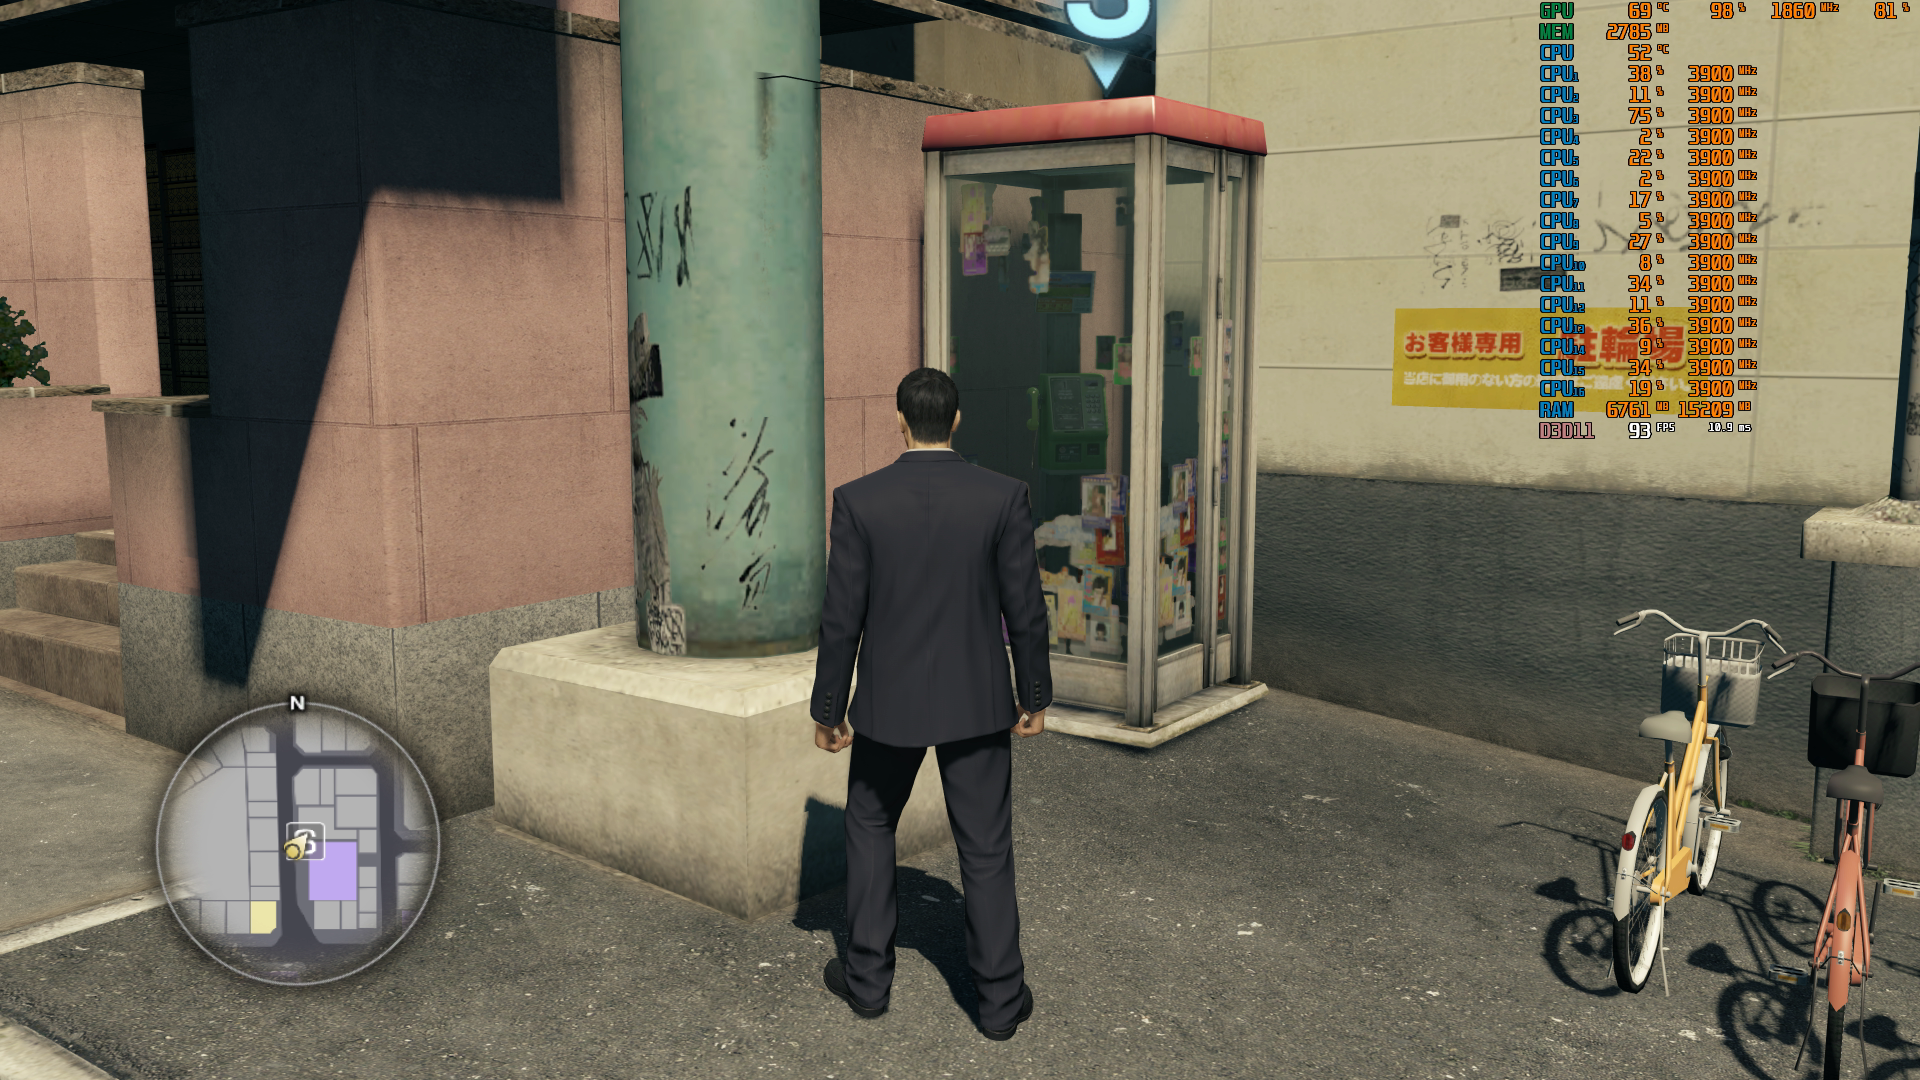 Yakuza 0's PC port is low on frills but gets the basics